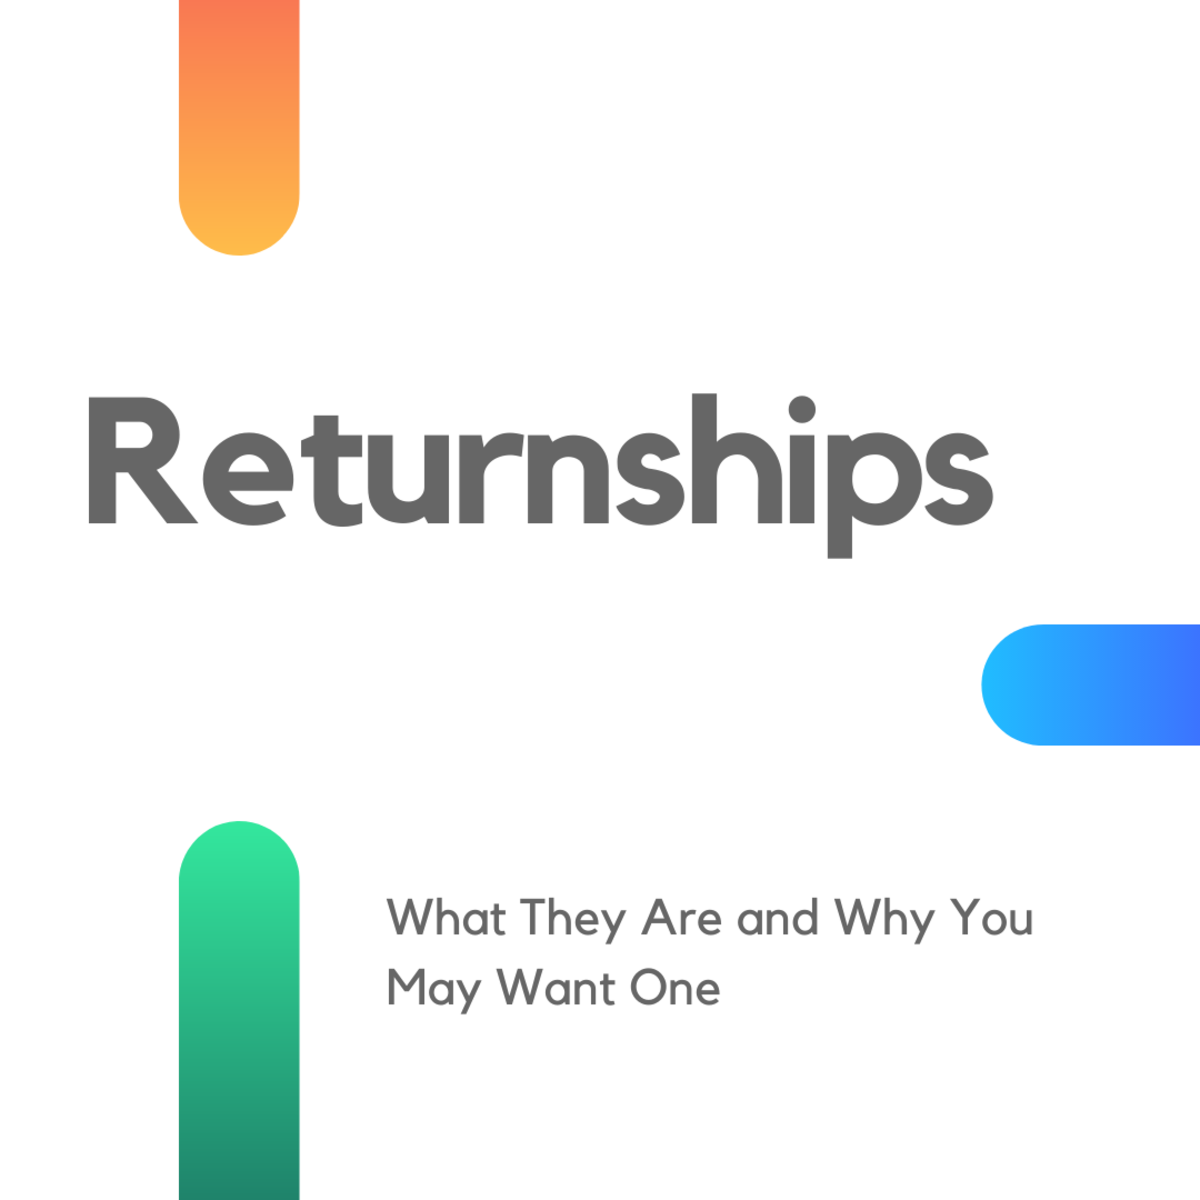 Read on for the pros and cons of returnships!